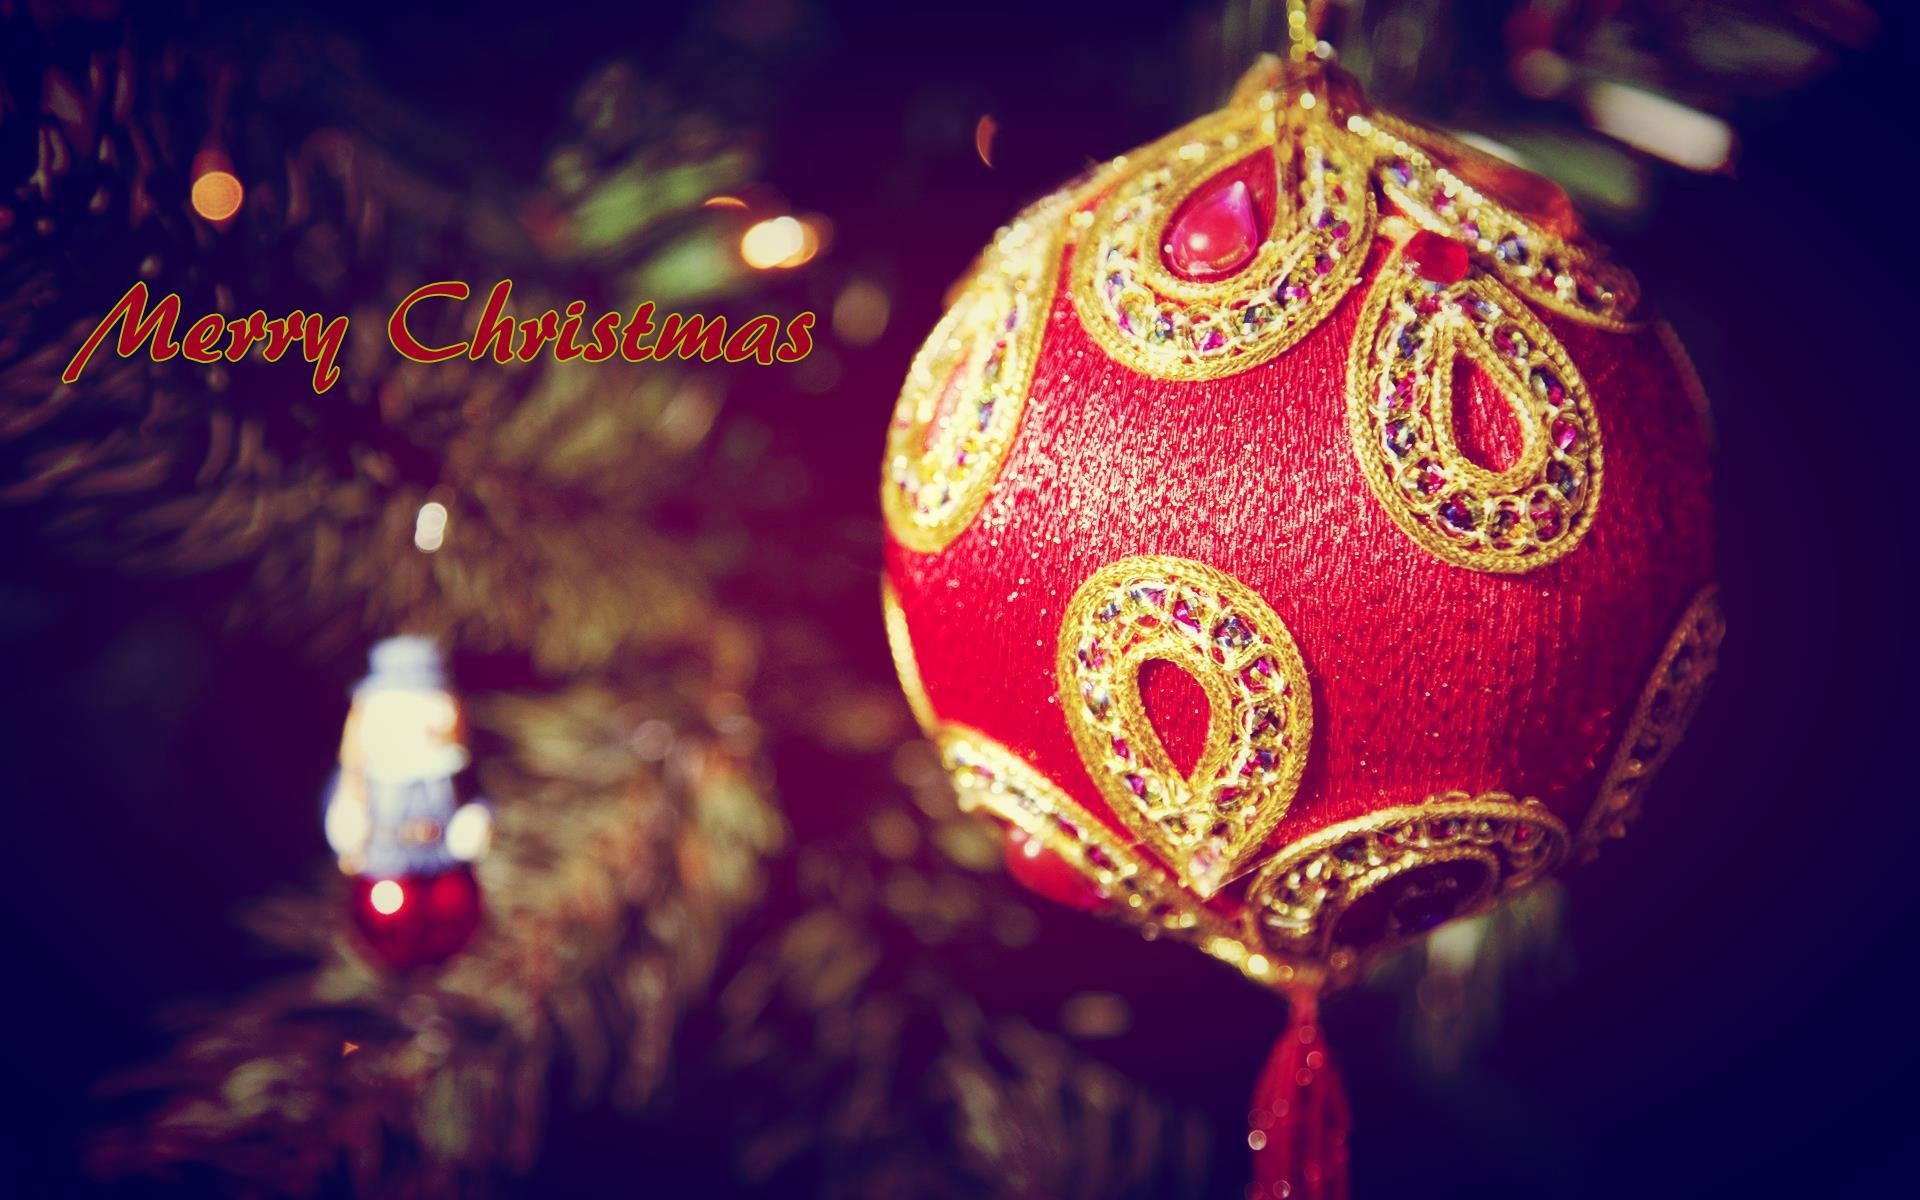 Merry Christmas Images Hd.Christmas Hd Wallpaper Download Free Wallpapers And